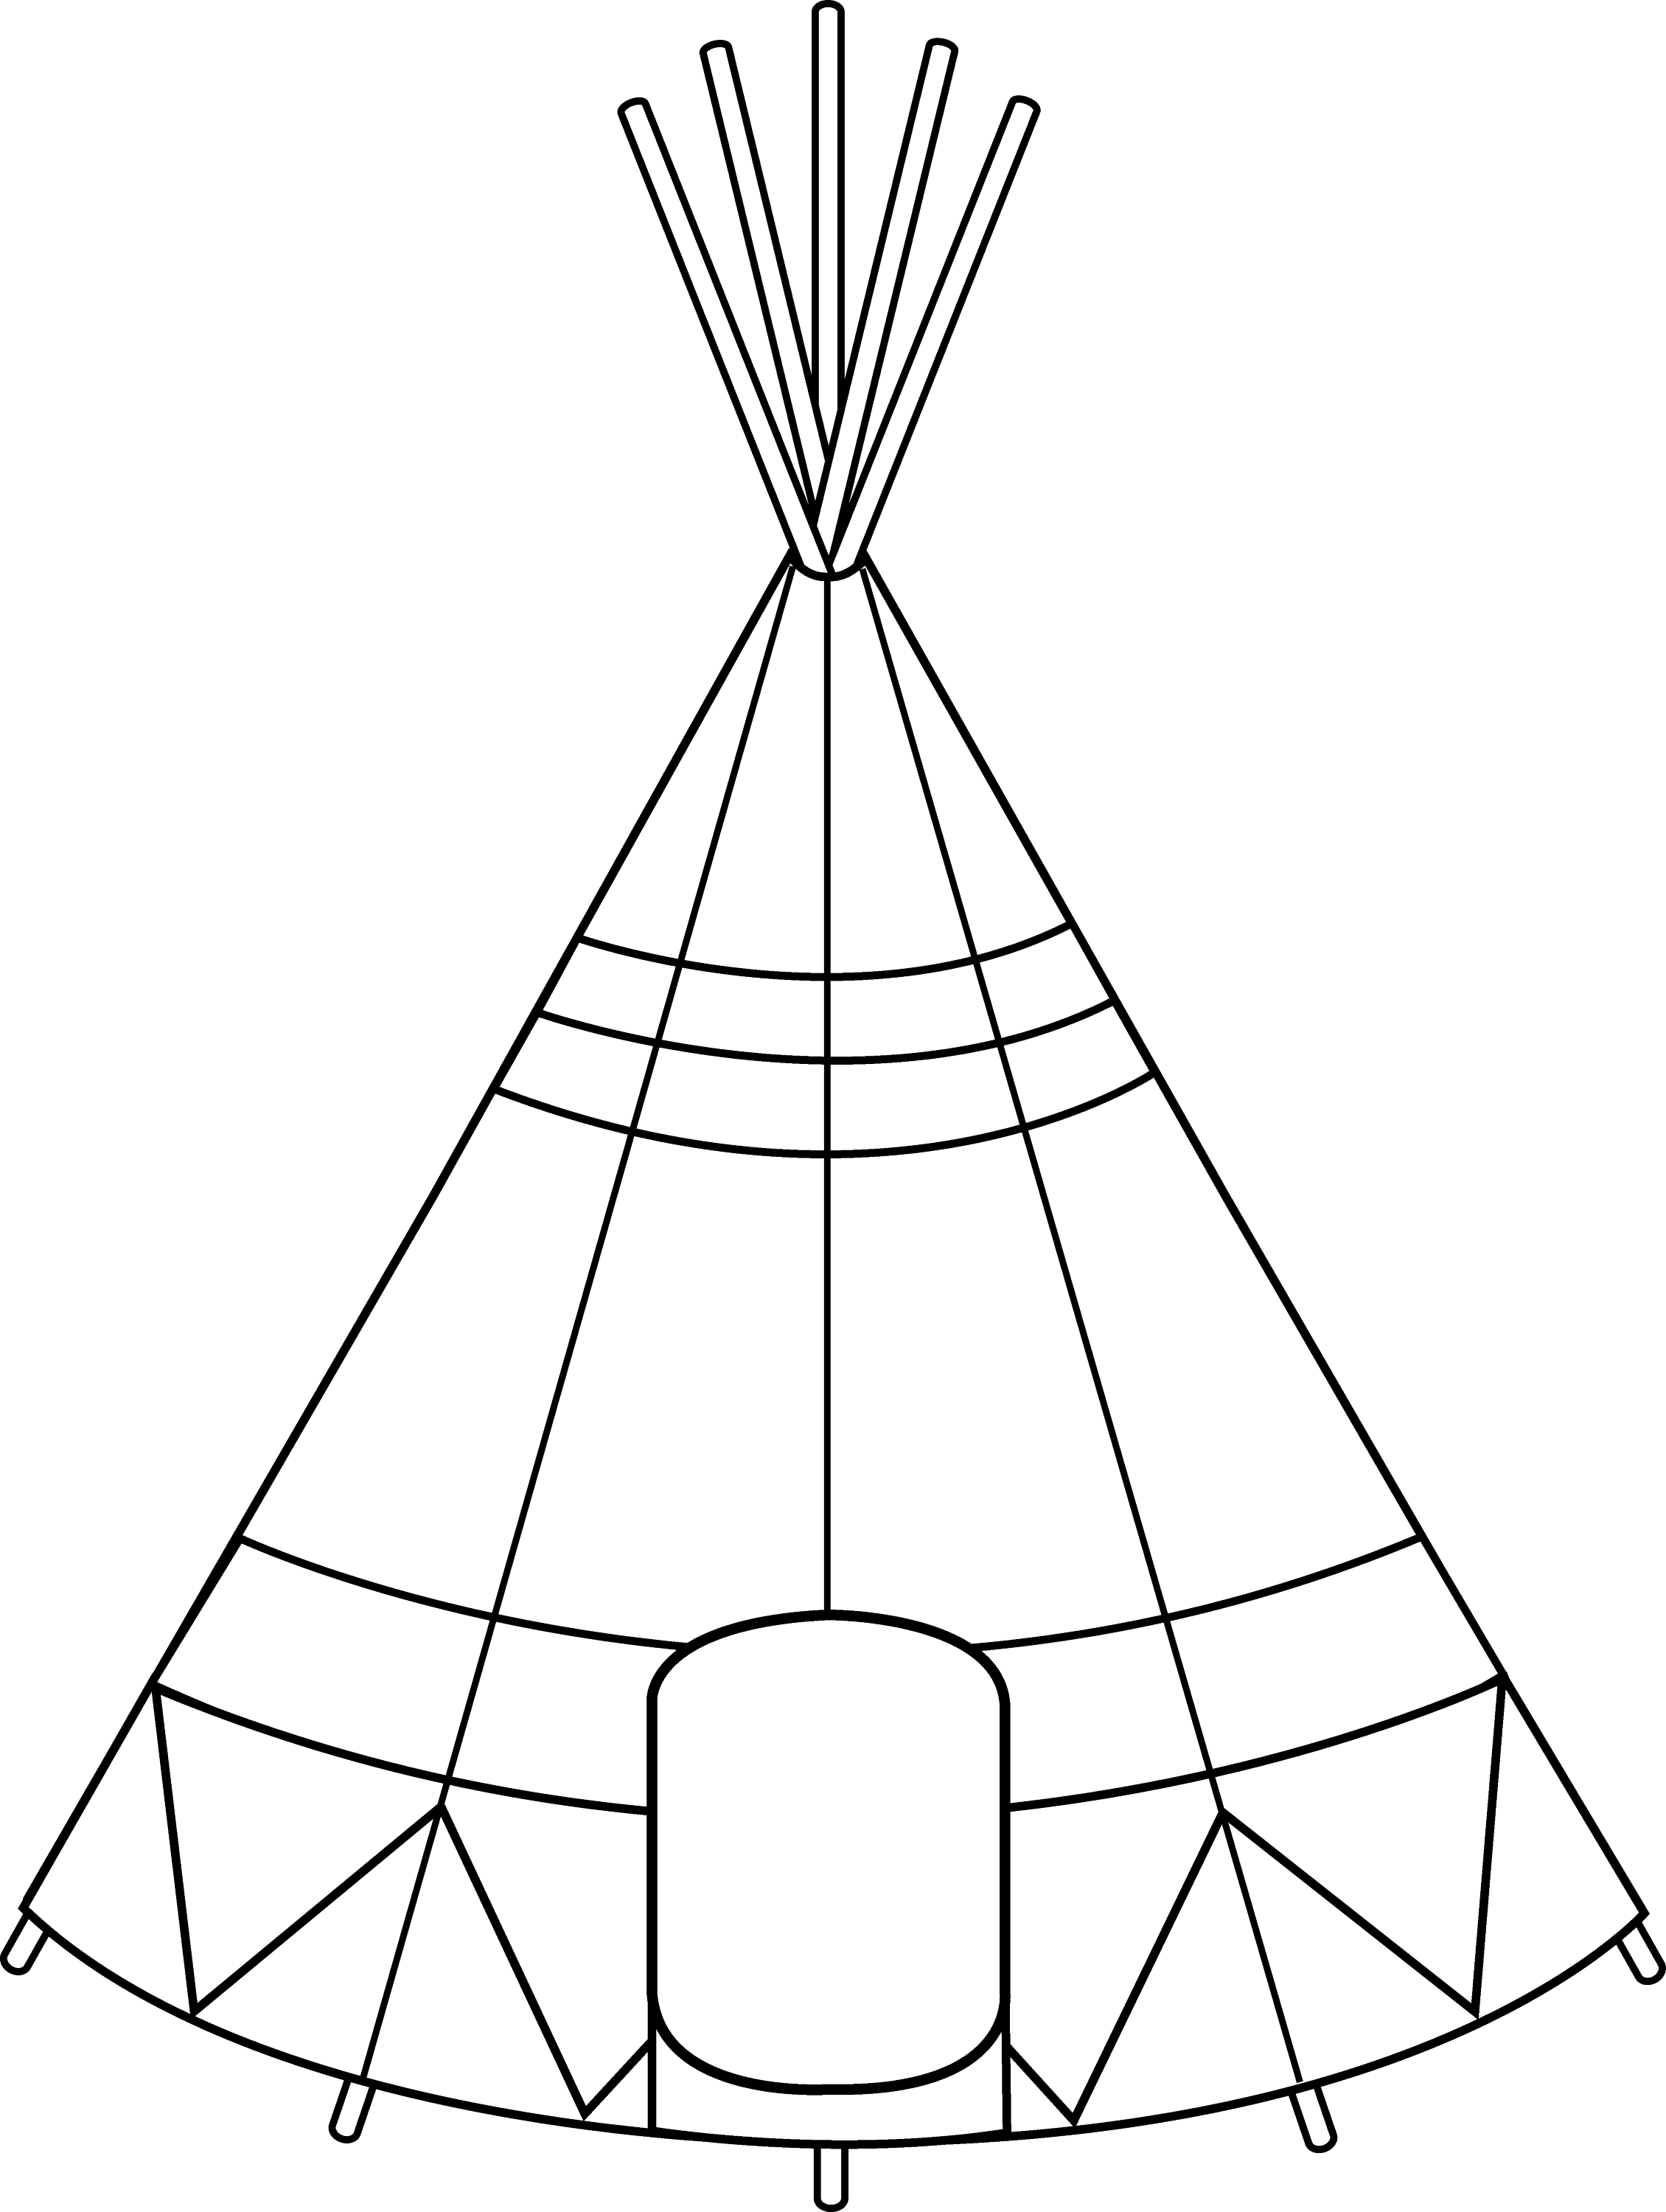 kids teepee coloring pages - photo#22